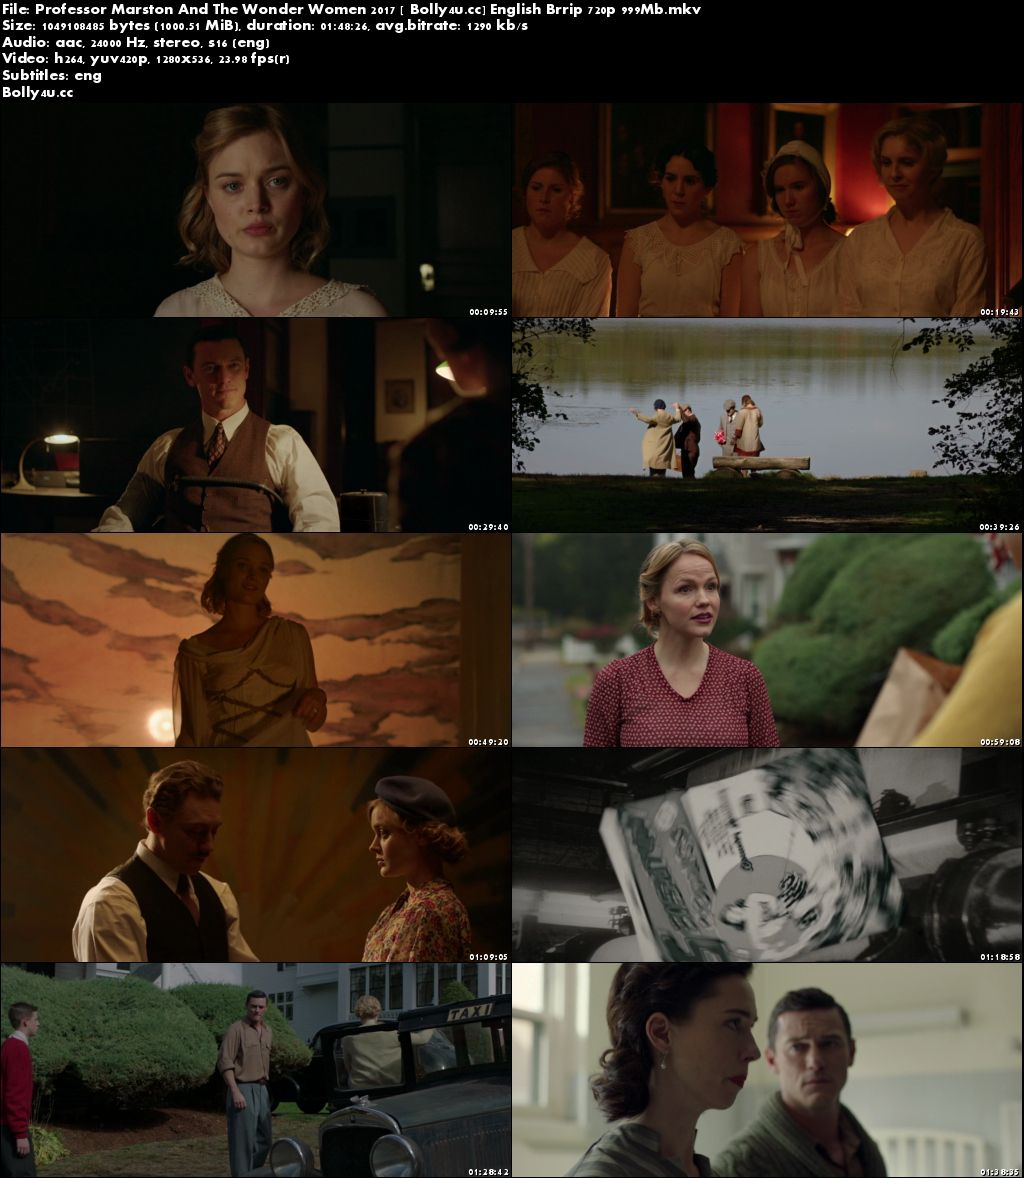 Professor Marston And The Wonder Women 2017 BRRip 999MB English 720p Download